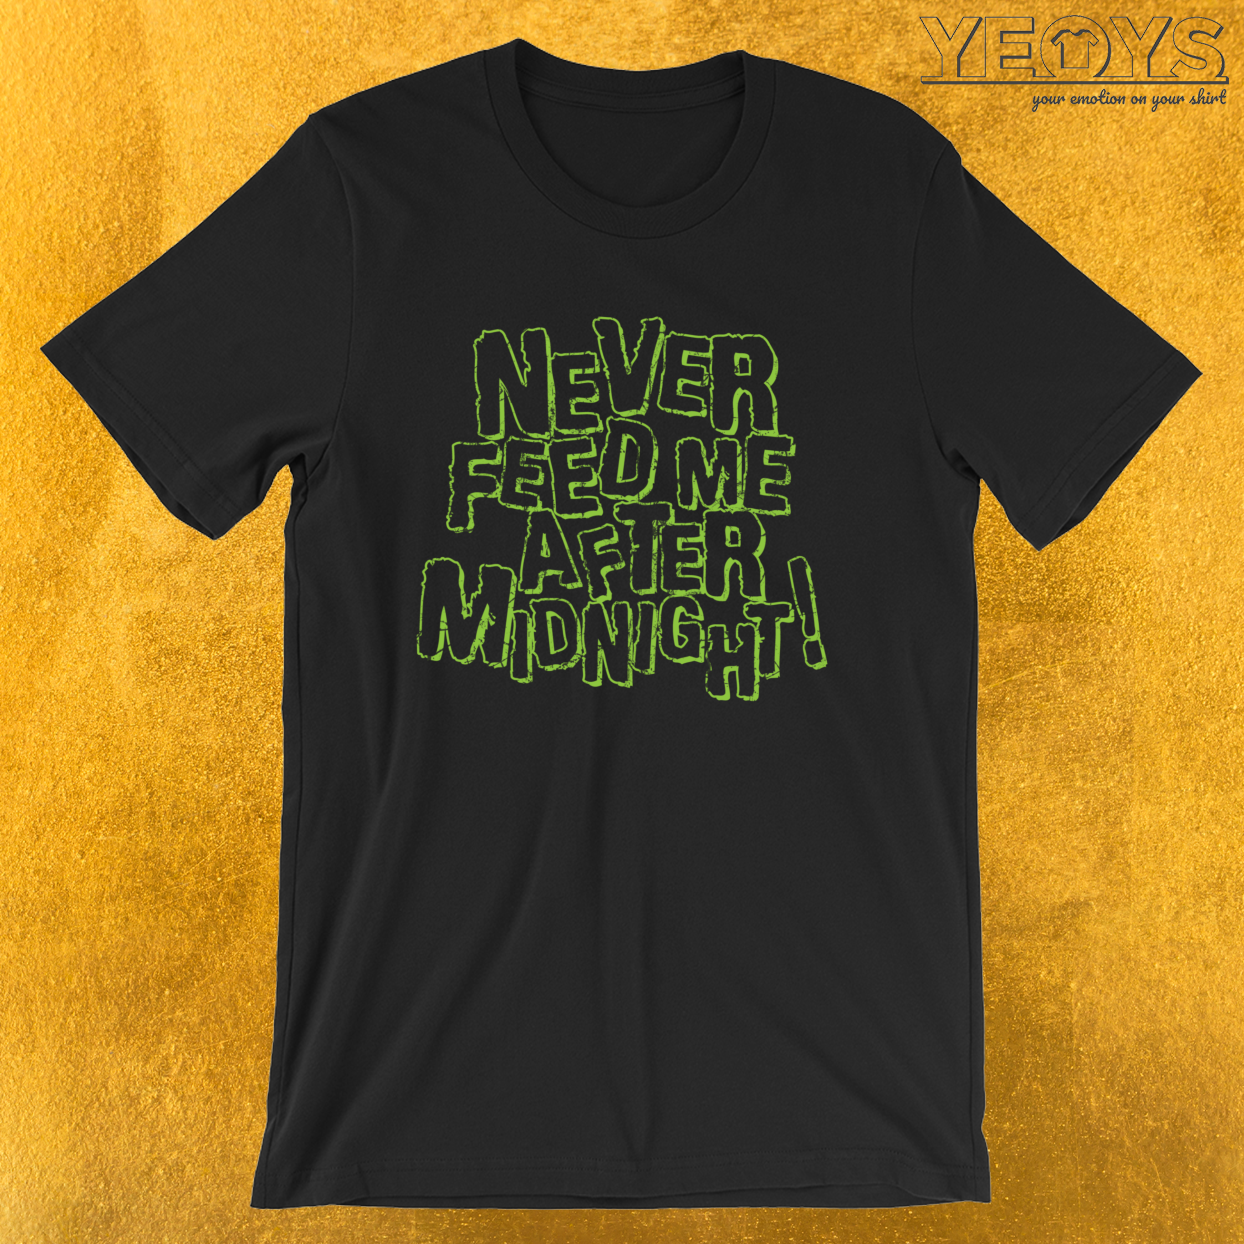 Never Feed Me After Midnight – Funny Horror Movie Tee